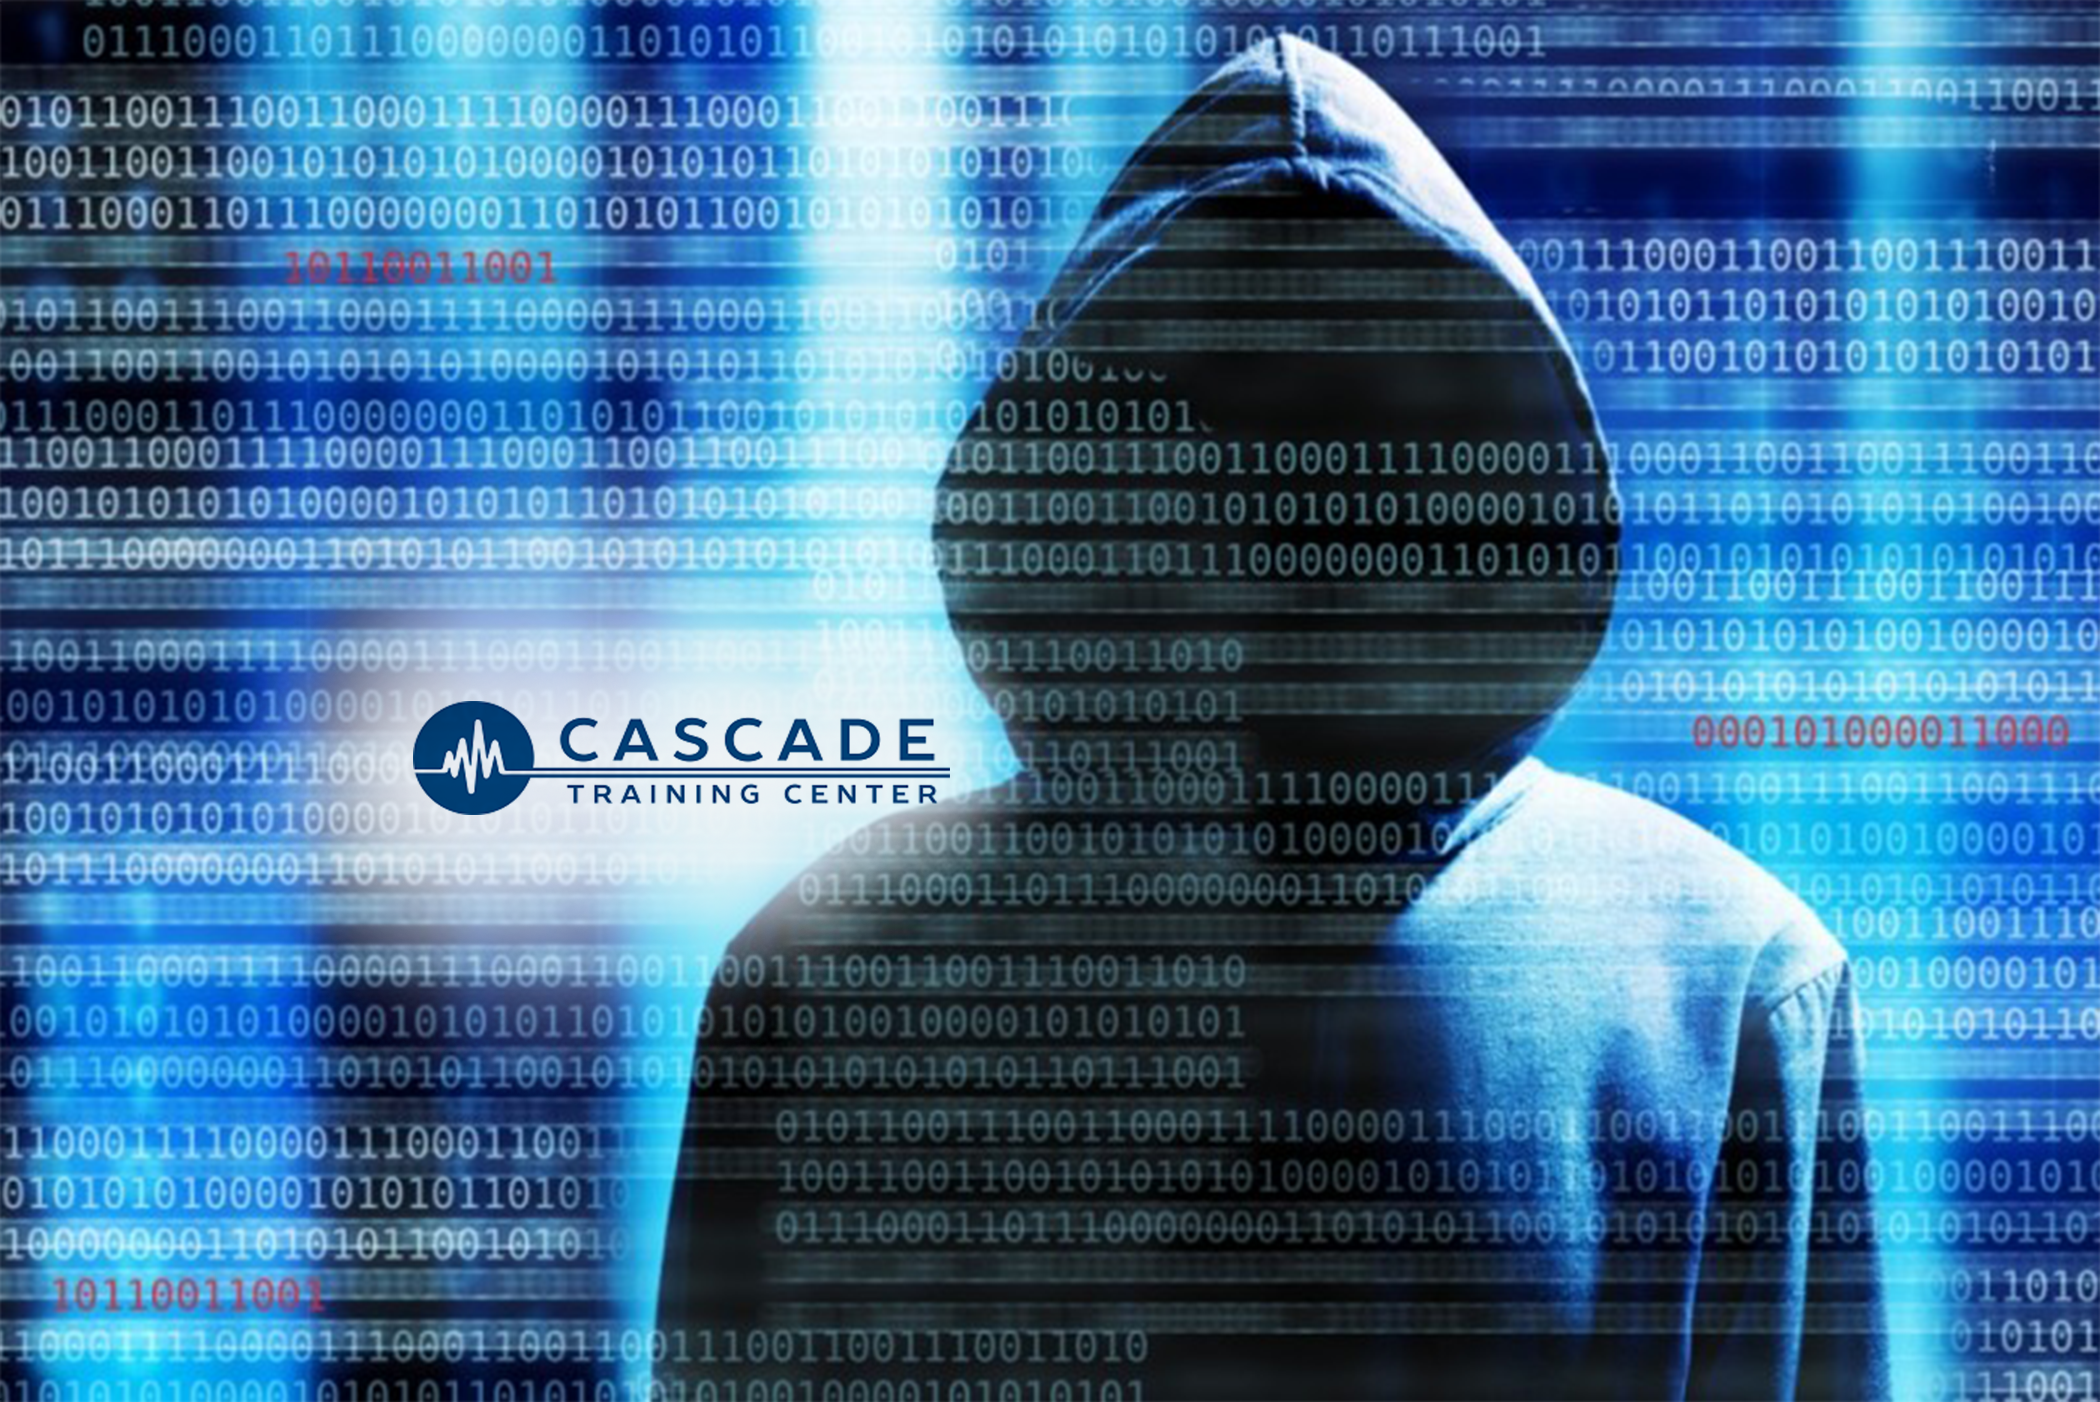 medical data hacking, medical data security, patient records security, cascade training, cascade training center